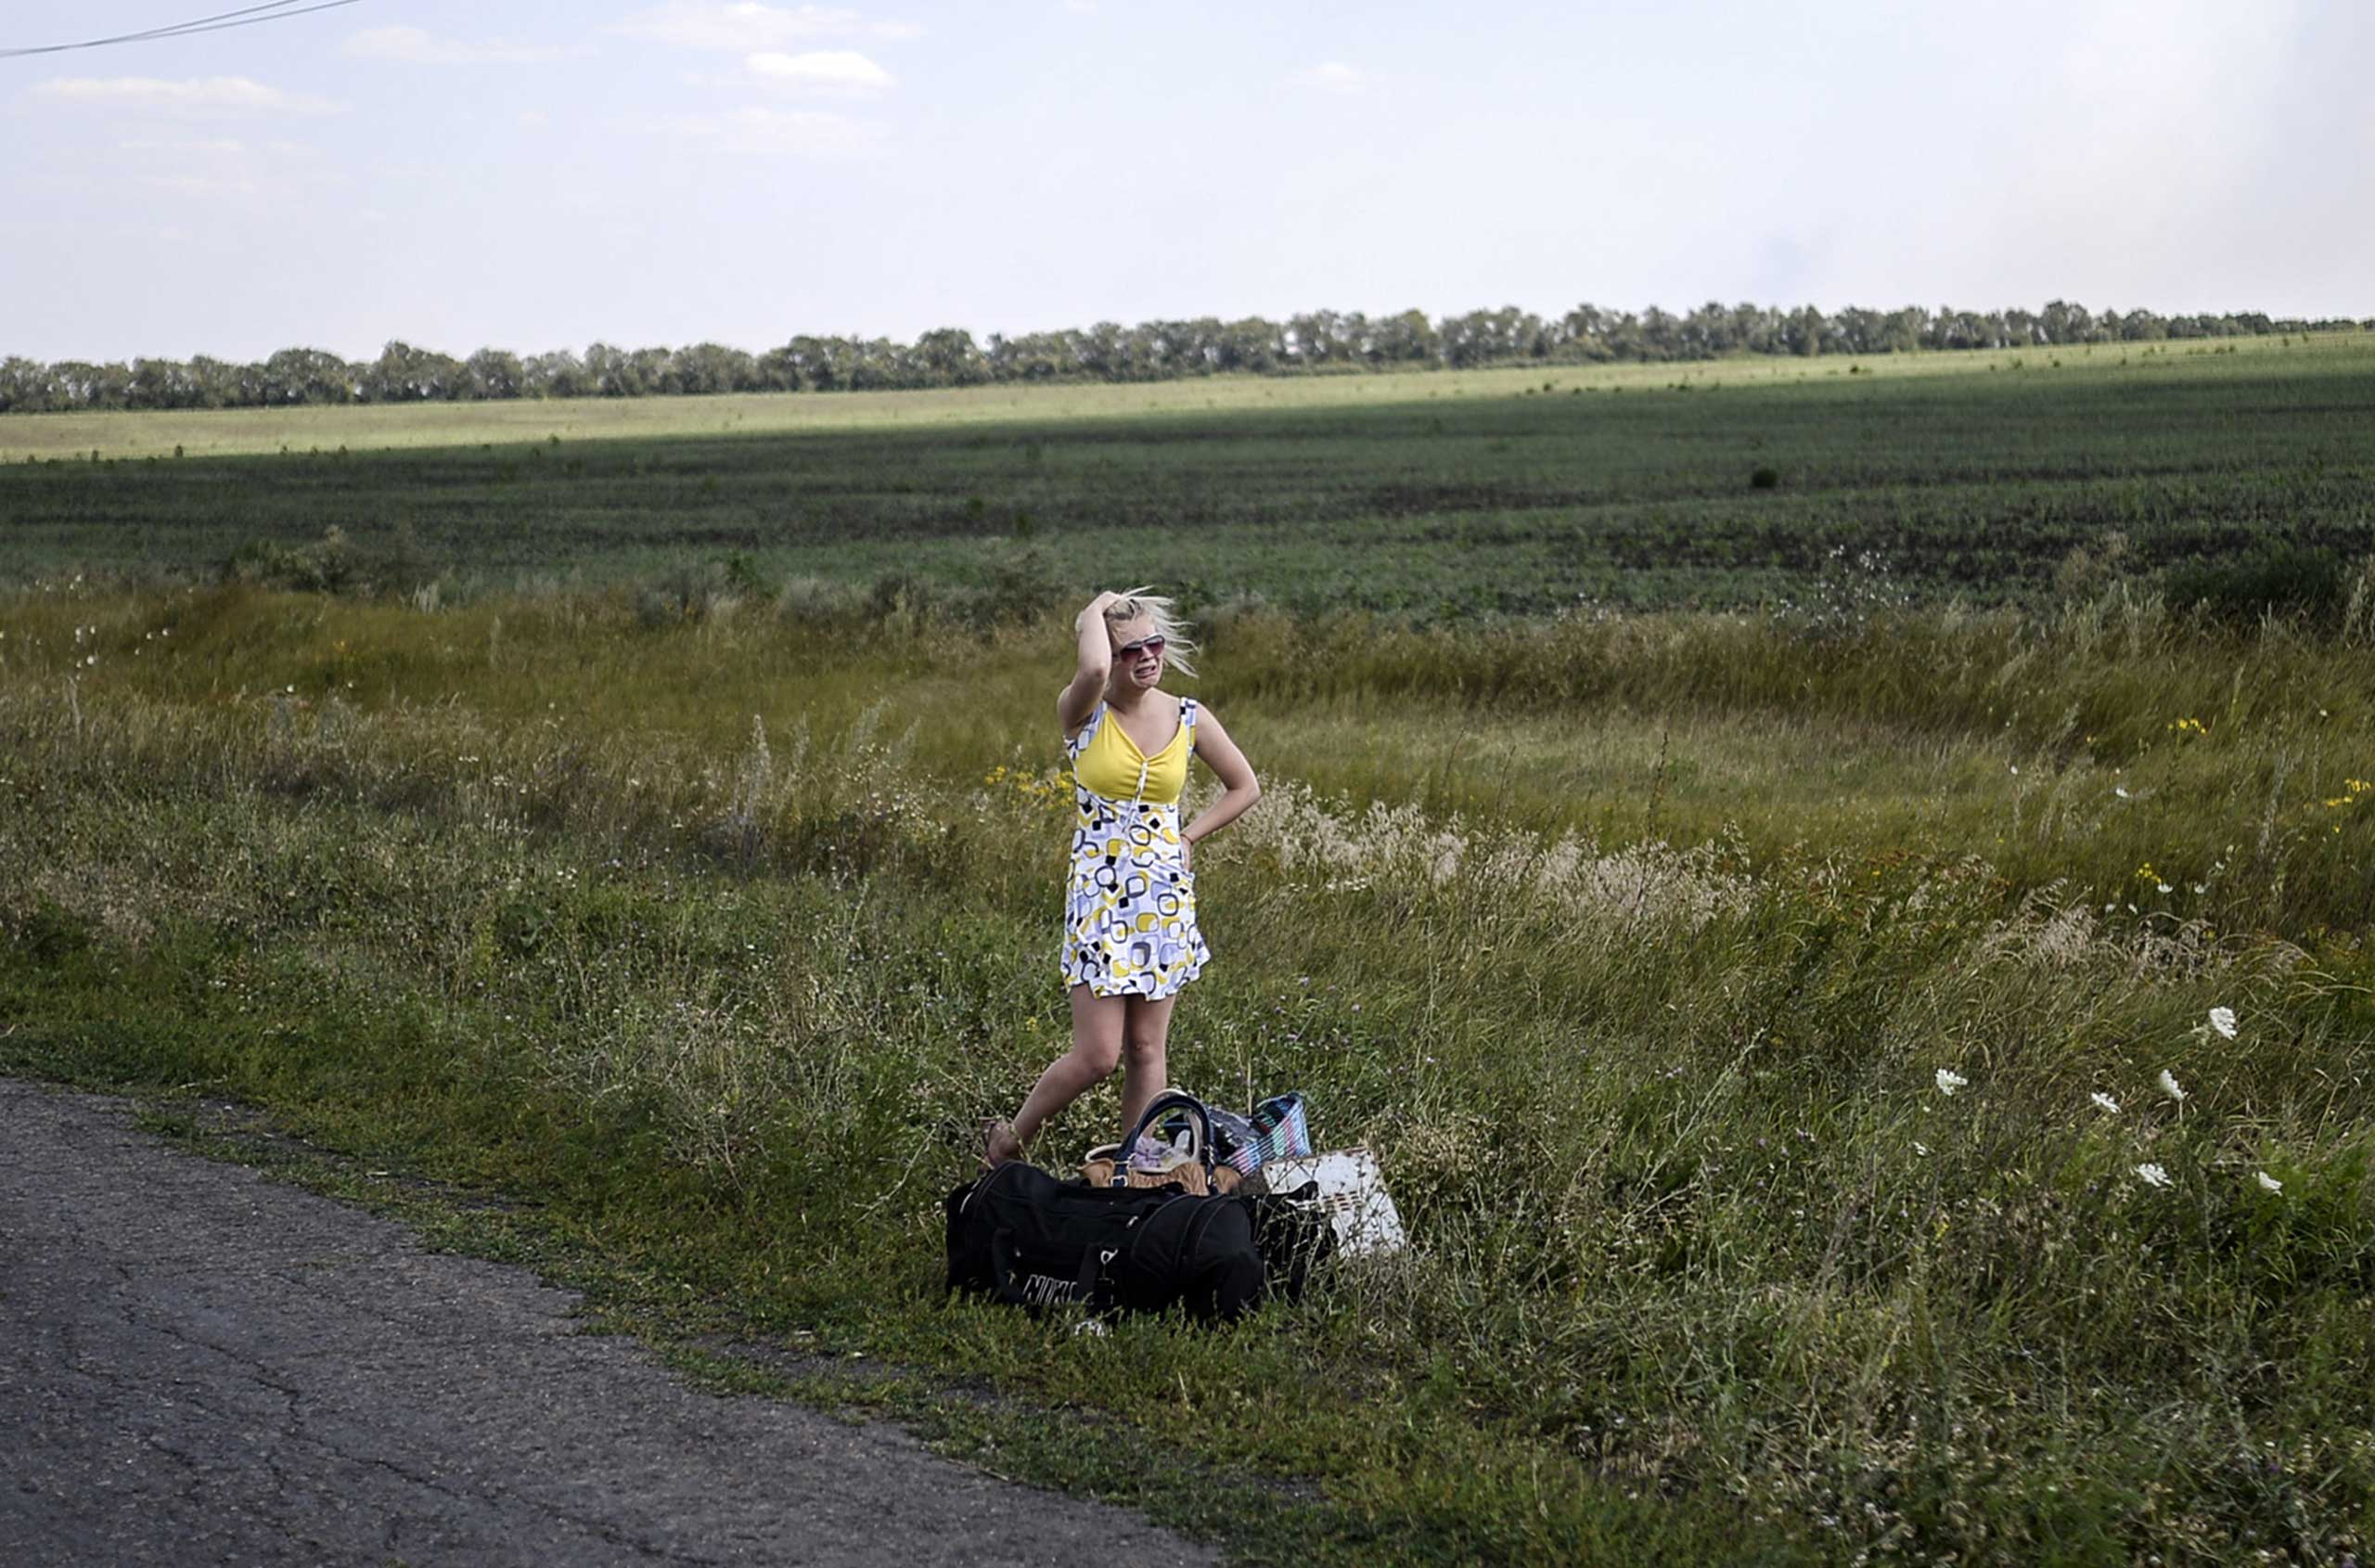 An Ukrainian girl cries as she stands on the road with her luggage after she left her home near the village of Hrabove (Grabovo), around 80km east of Donetsk, Ukraine, on Aug. 2, 2014.